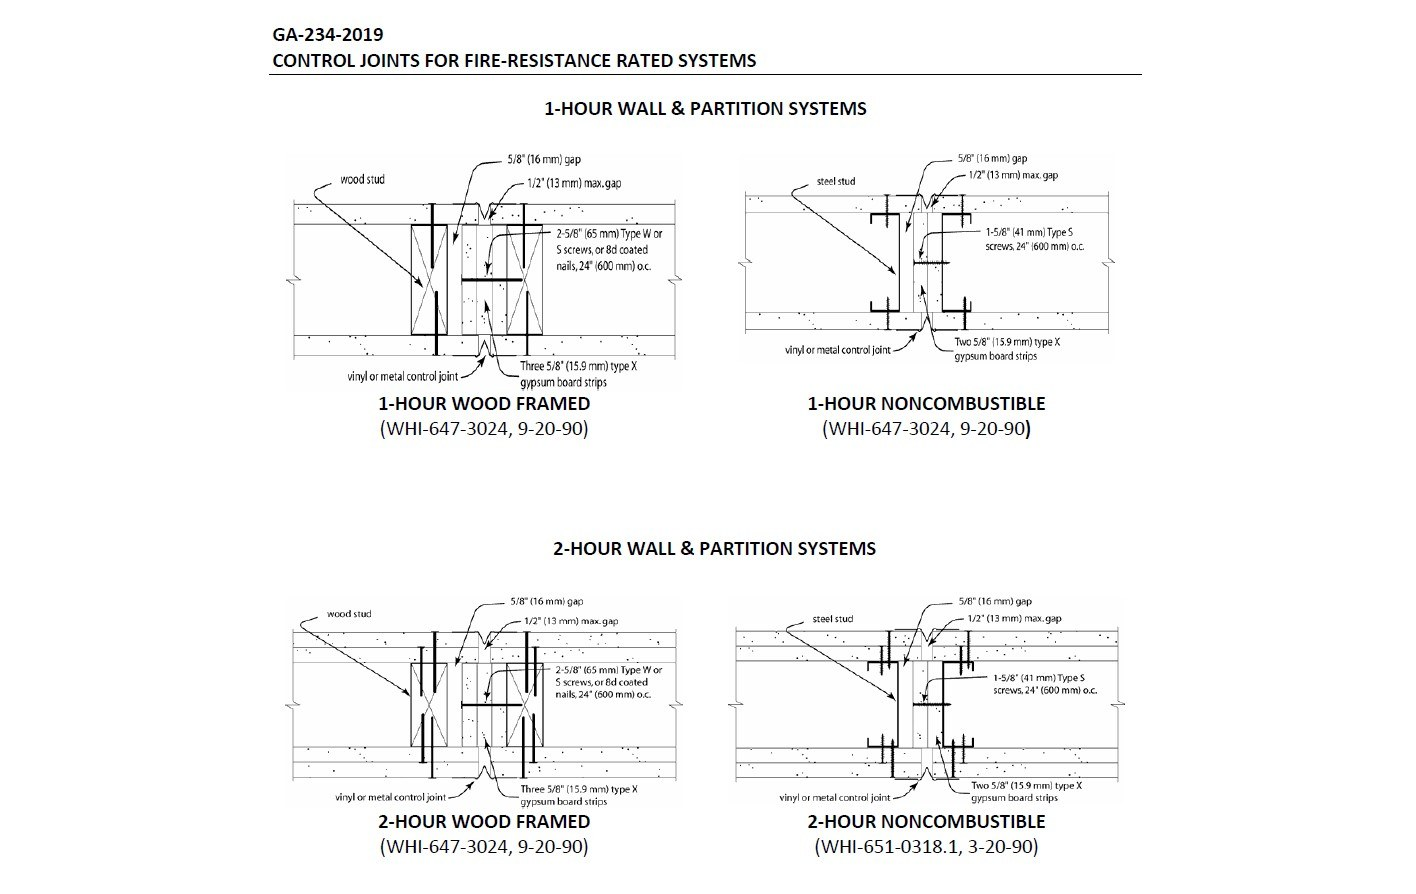 Image from GA-234, Control Joints for Fire-Resistance Rated Systems